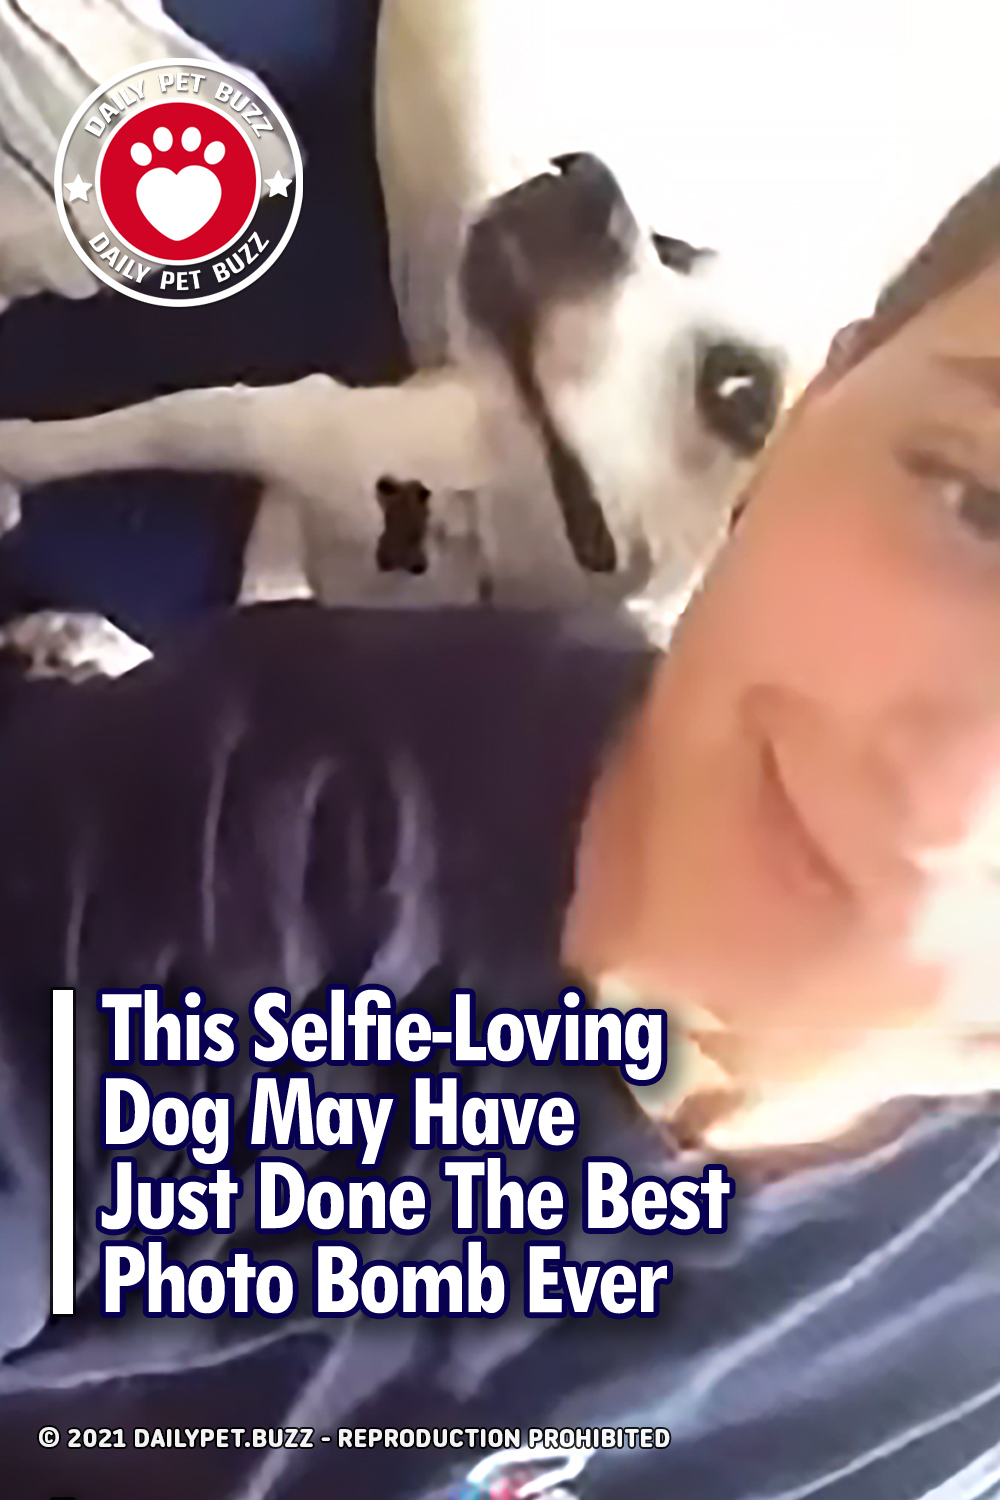 This Selfie-Loving Dog May Have Just Done The Best Photo Bomb Ever